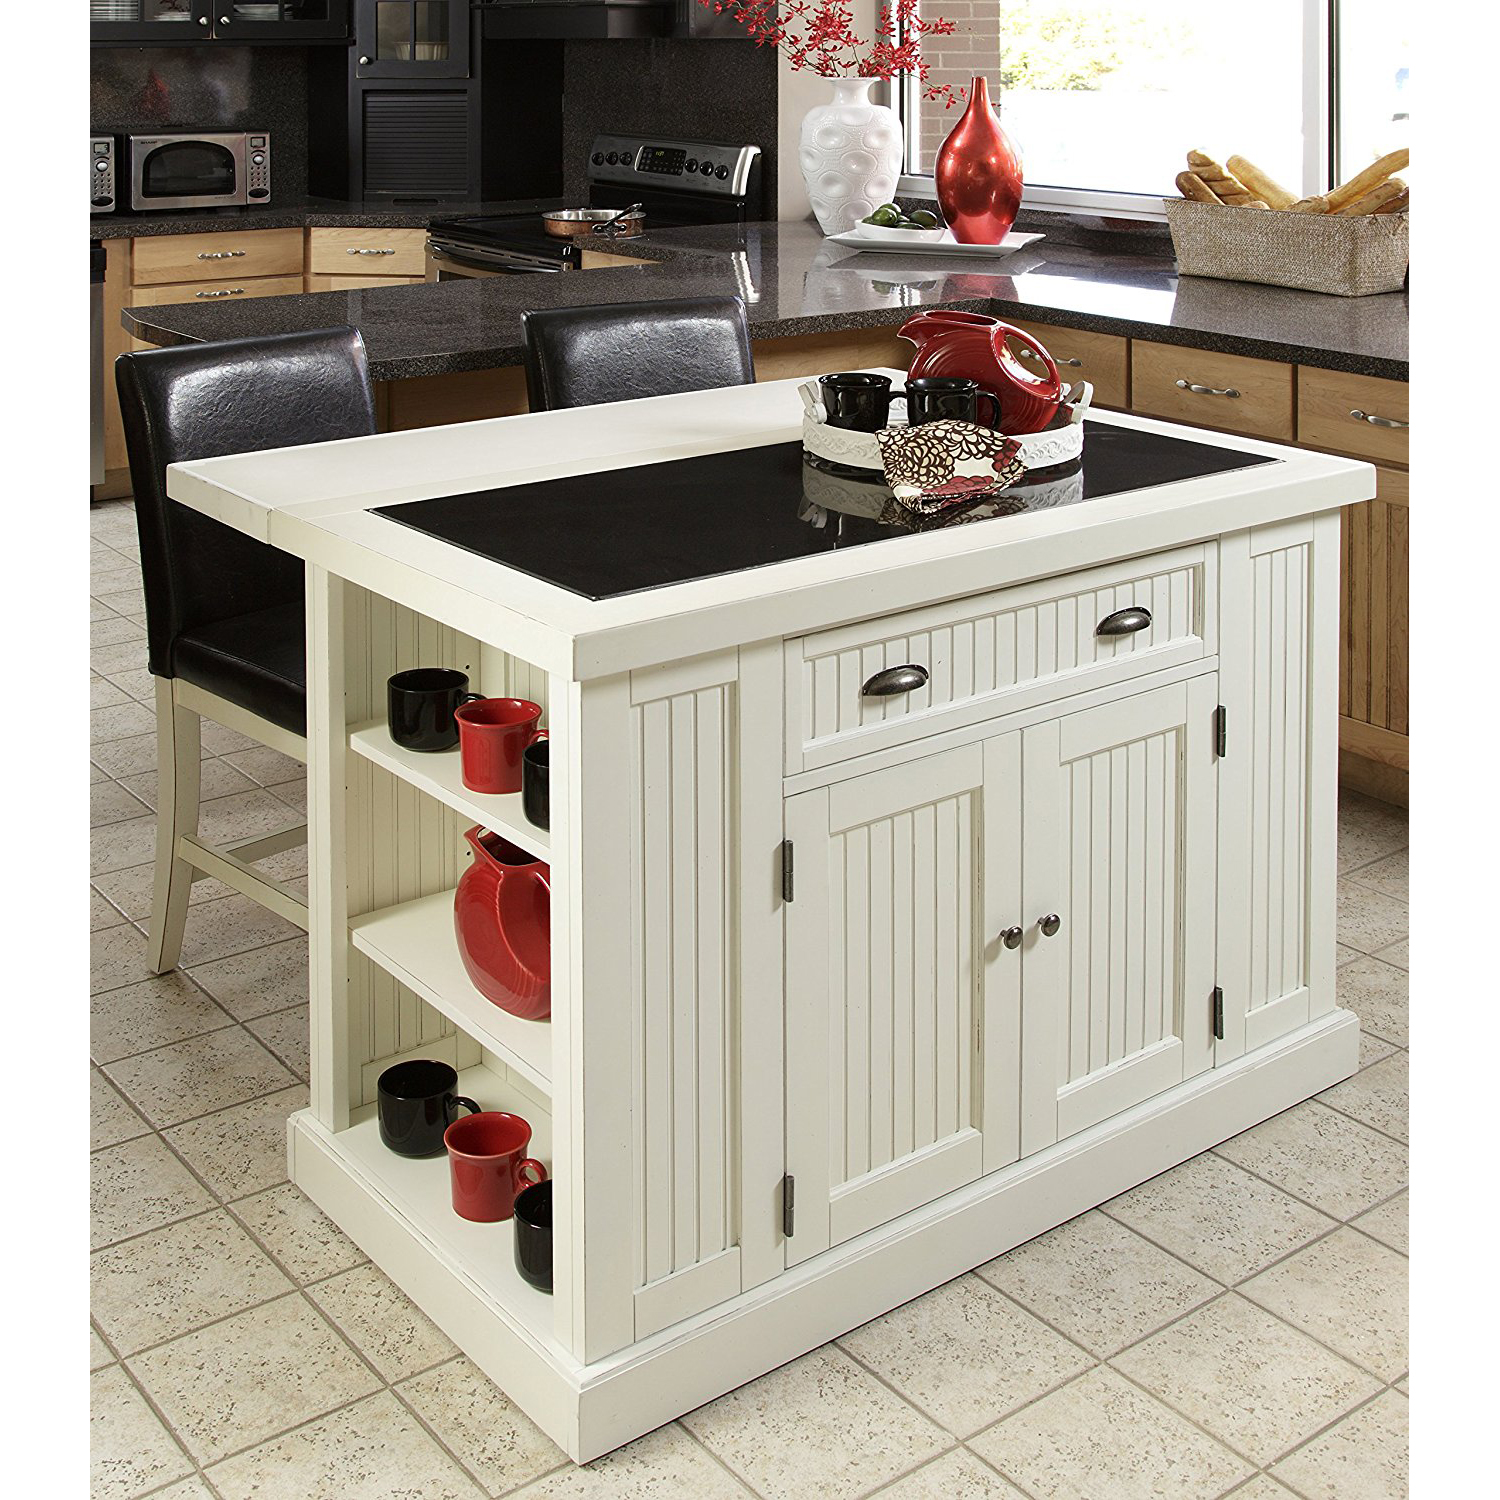 Top 10 Best Kitchen Islands, Carts, Centers & Utility Tables